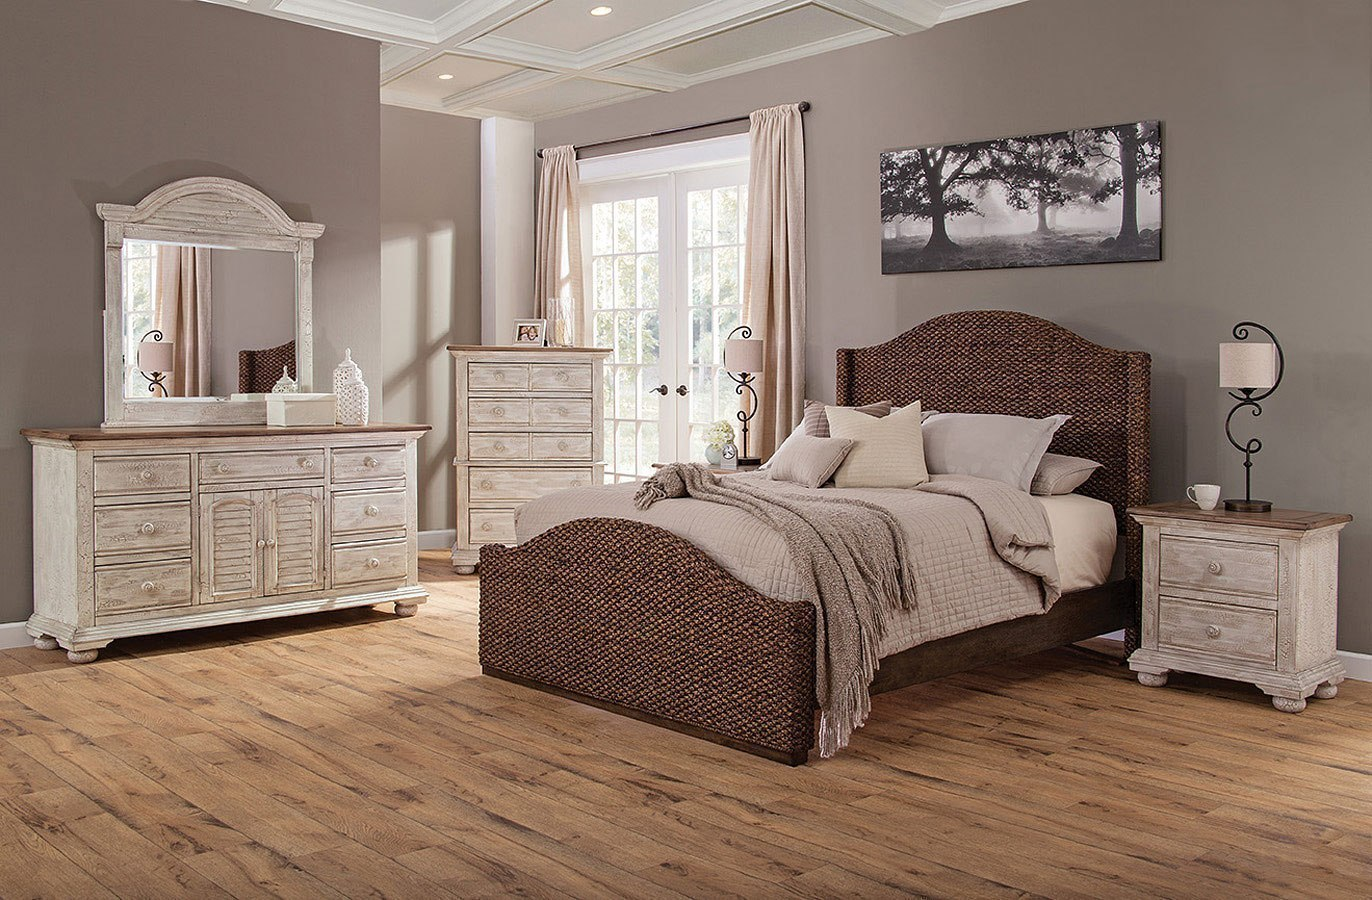 Cottage Traditions Crackled White Bedroom Set W Seaside Dark Bed By American Woodcrafters Furniturepick